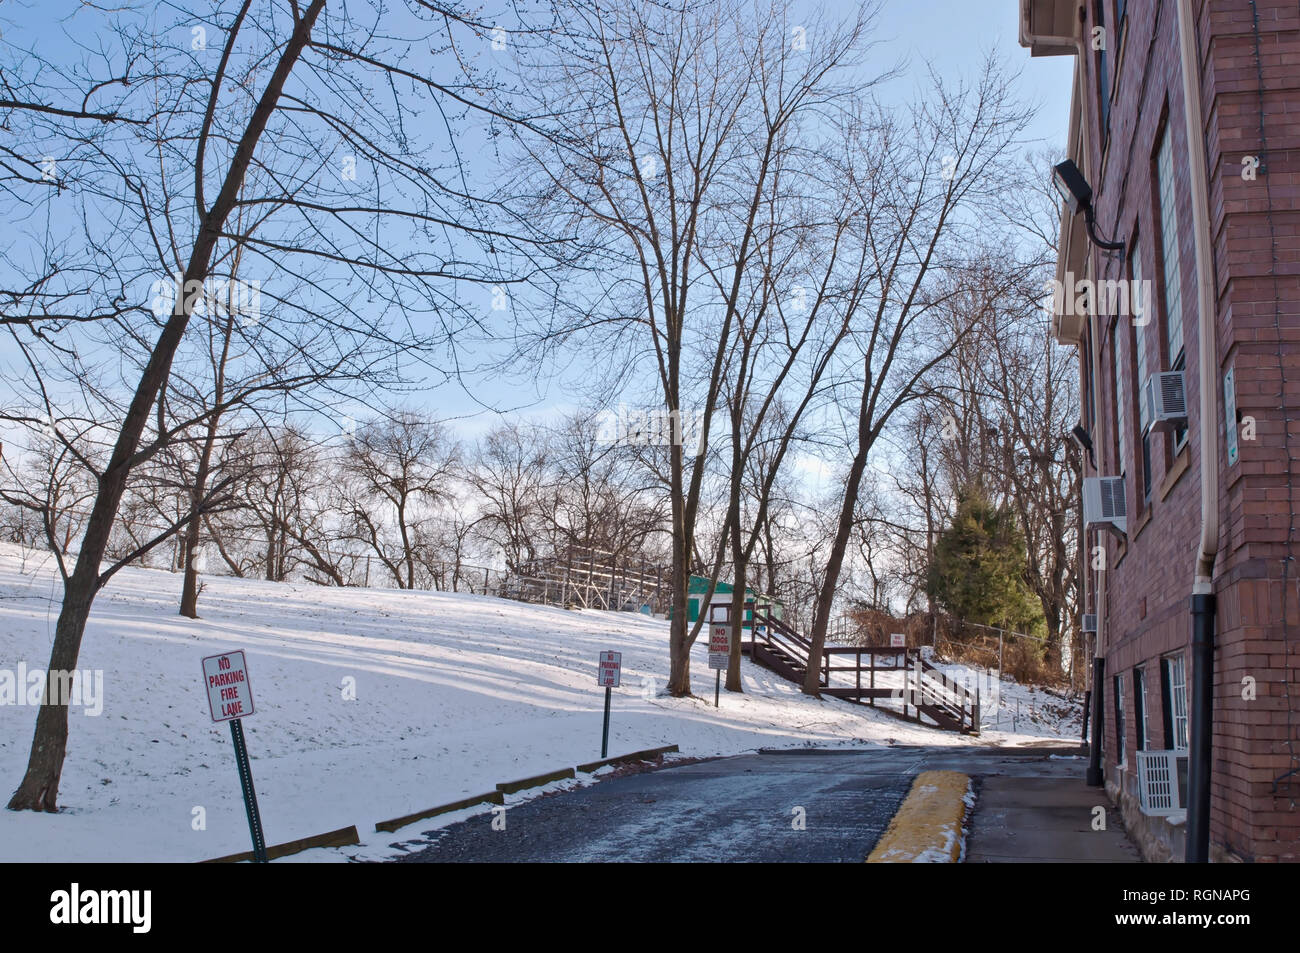 A driveway next to a building in winter with snow and bare trees in Braddock Hills, Pennsylvania, USA - Stock Image